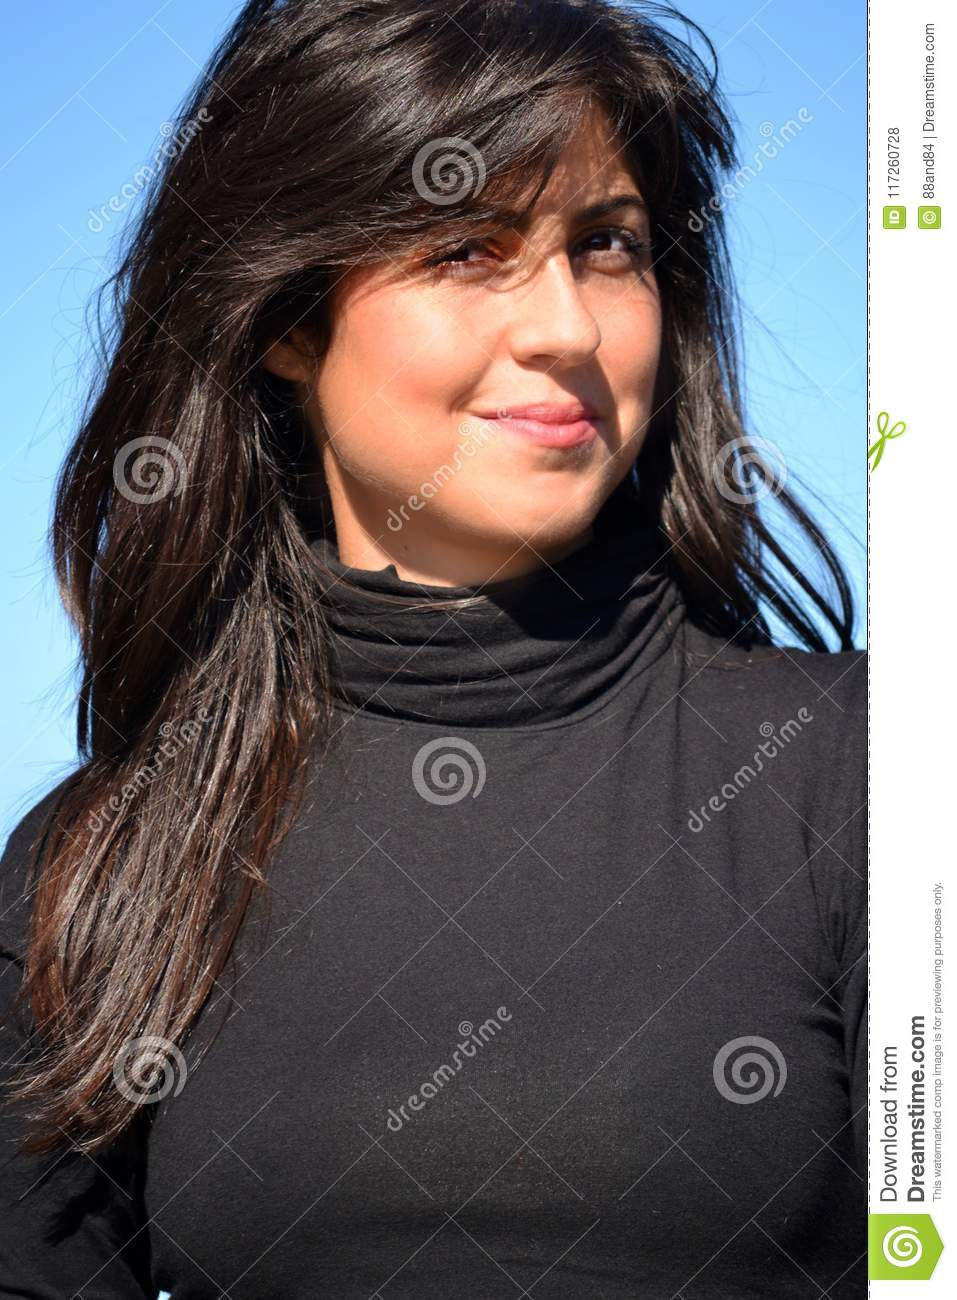 Happy Woman on a Blue Sky Background